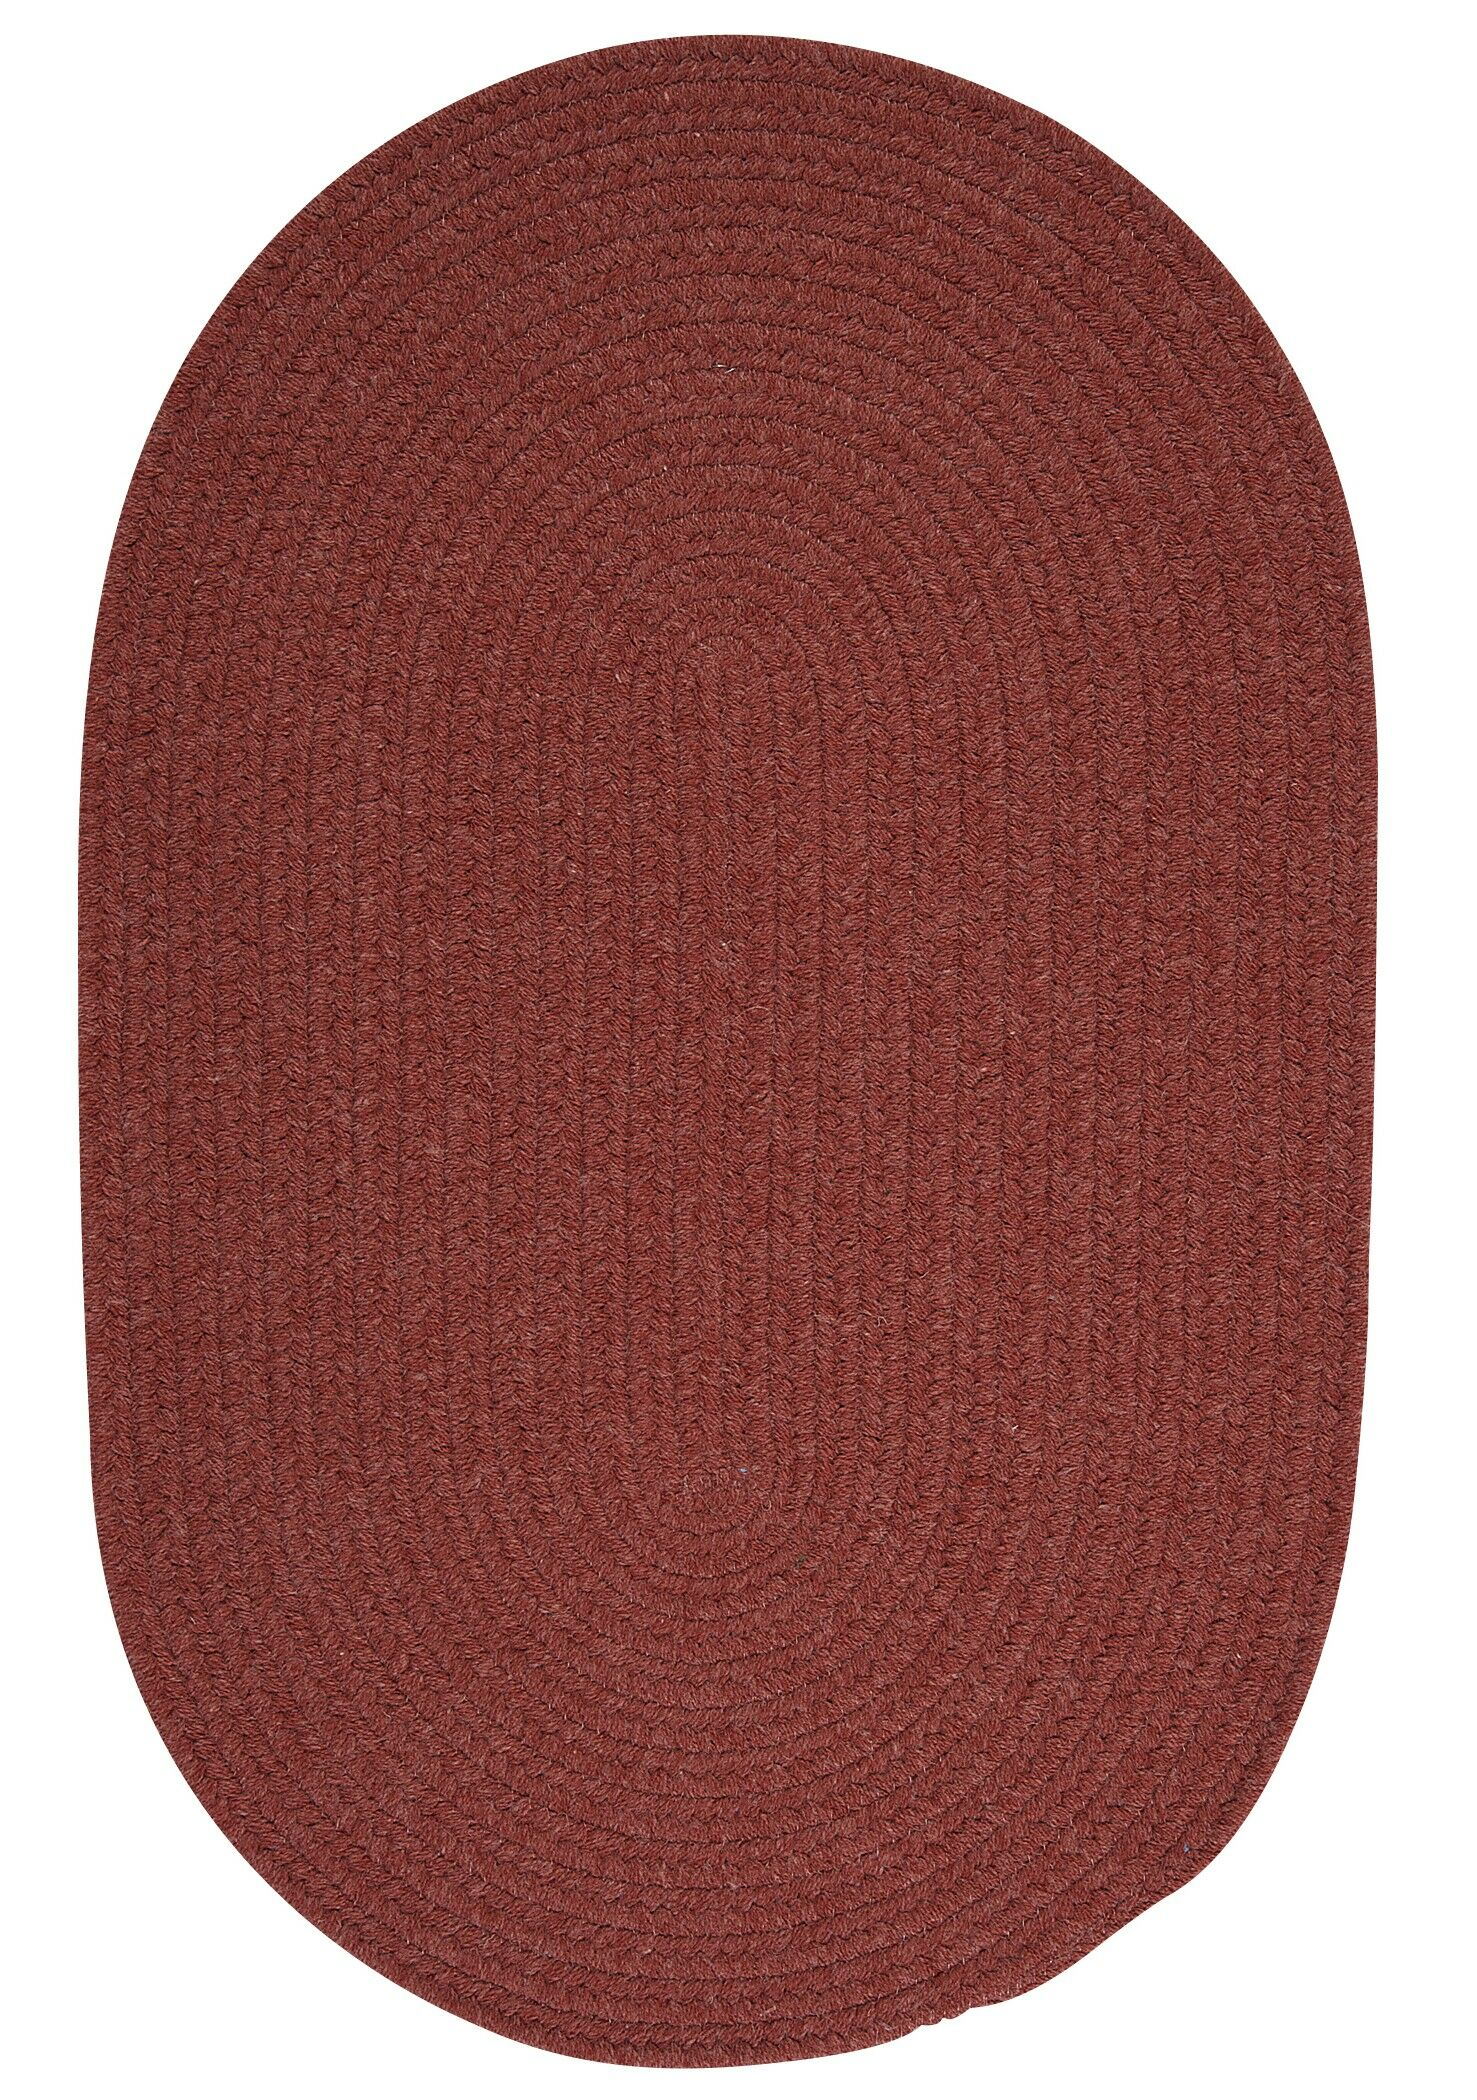 Navarrette Red Area Rug Rug Size: Oval 4' x 6'